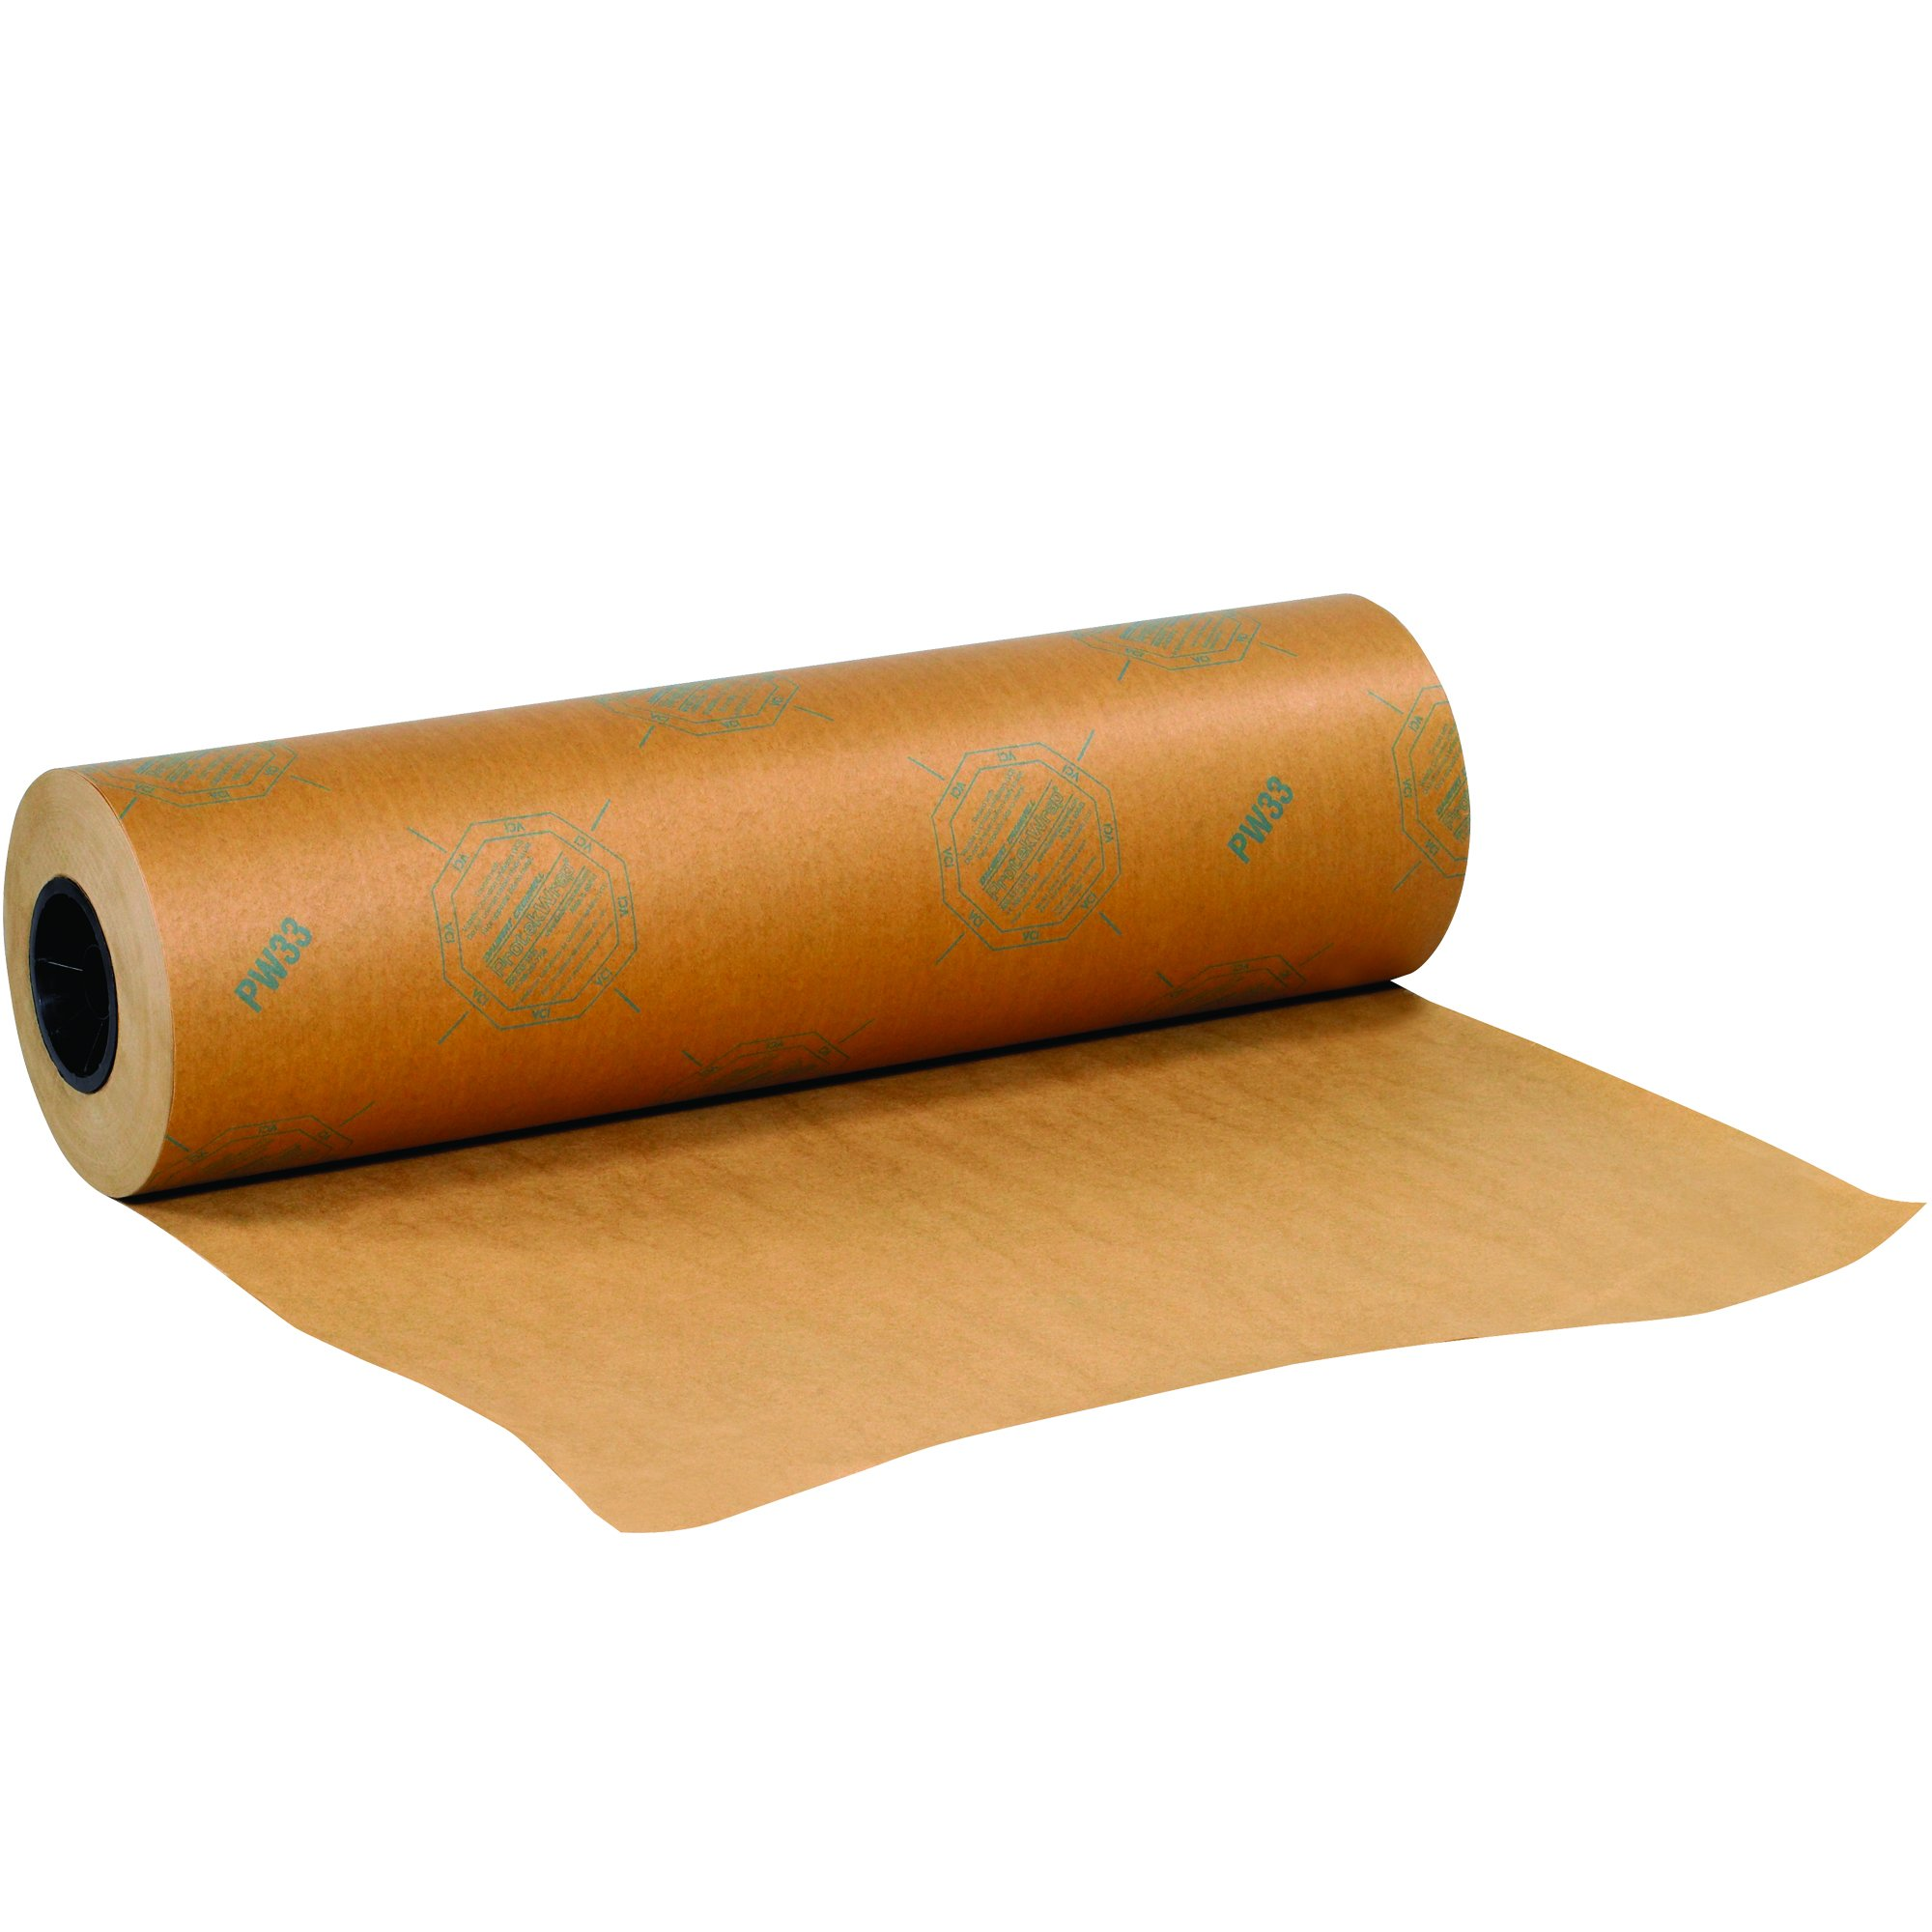 BOX USA BVCI36WAX VCI Paper, Waxed Industrial Rolls, 30#, 36'' x 200 yds, Kraft (Pack of 1) by BOX USA